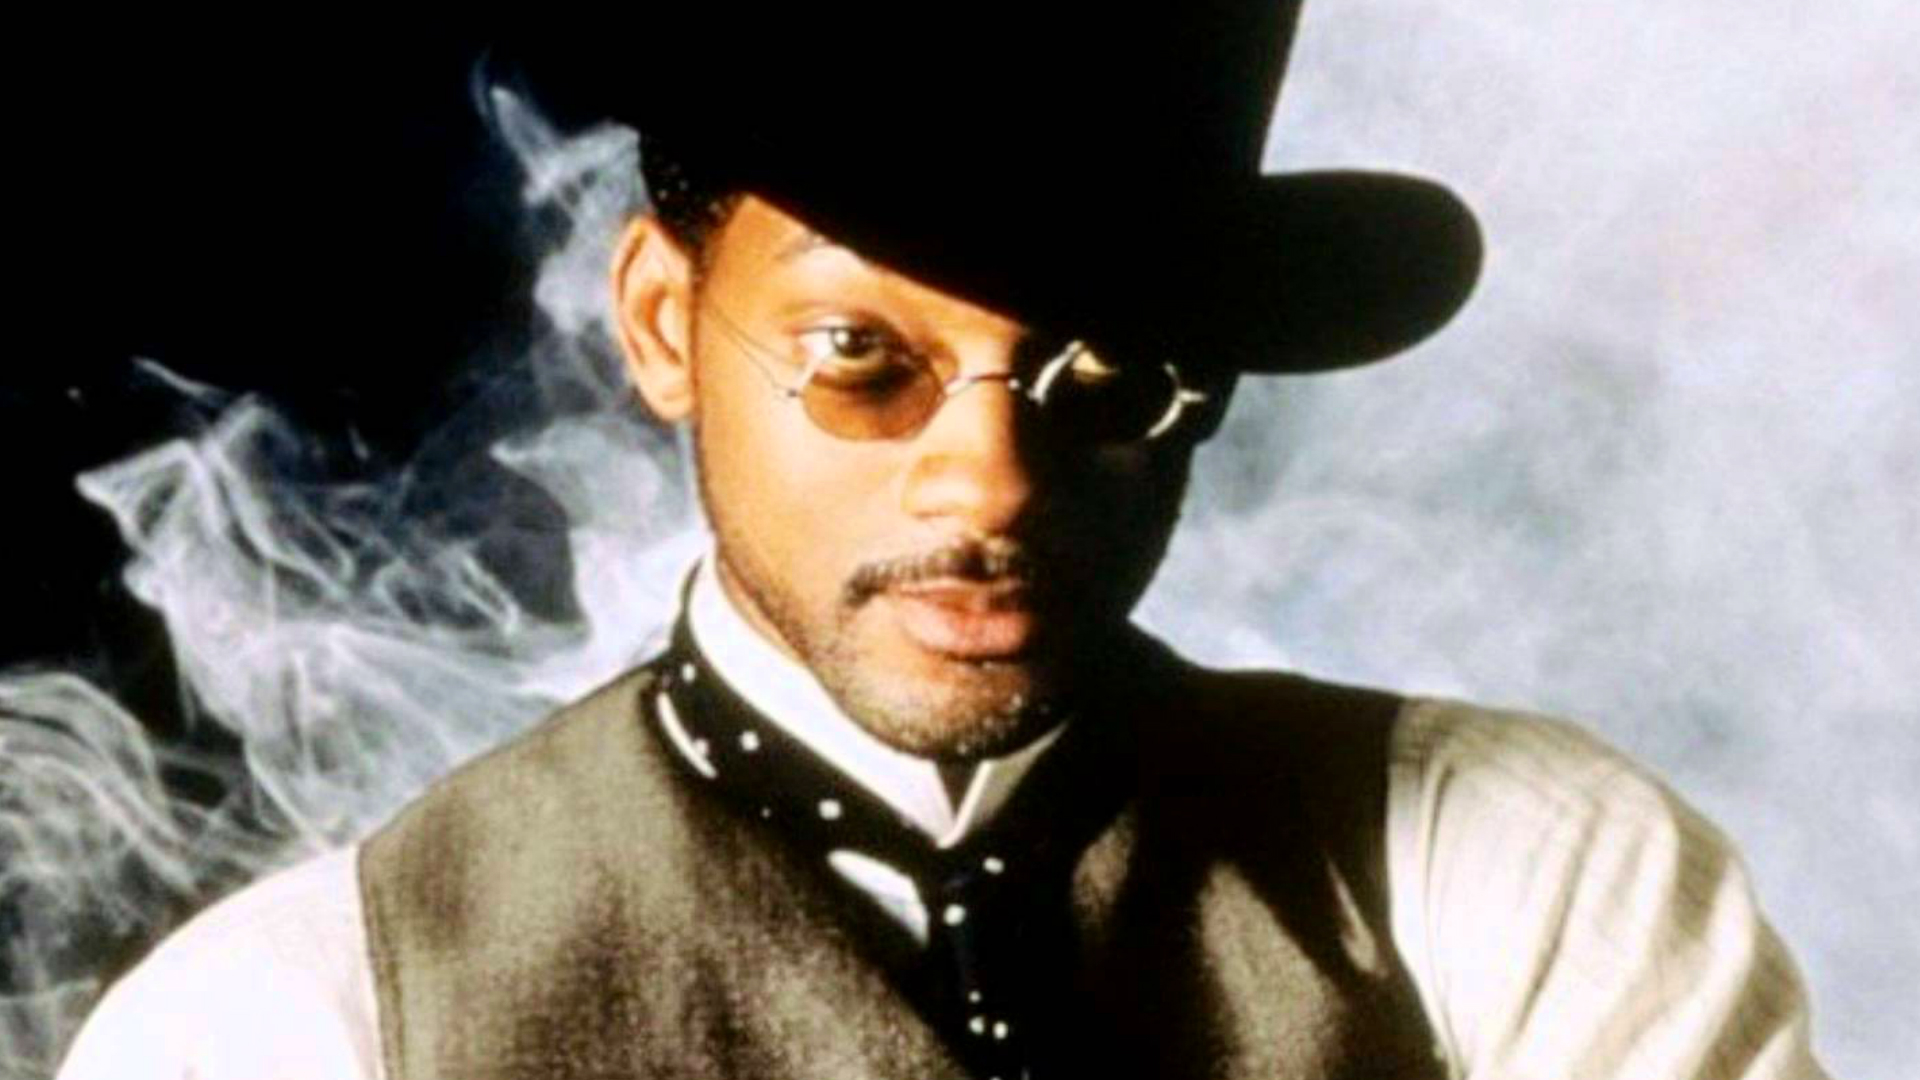 Will Smith in Wild Wild West